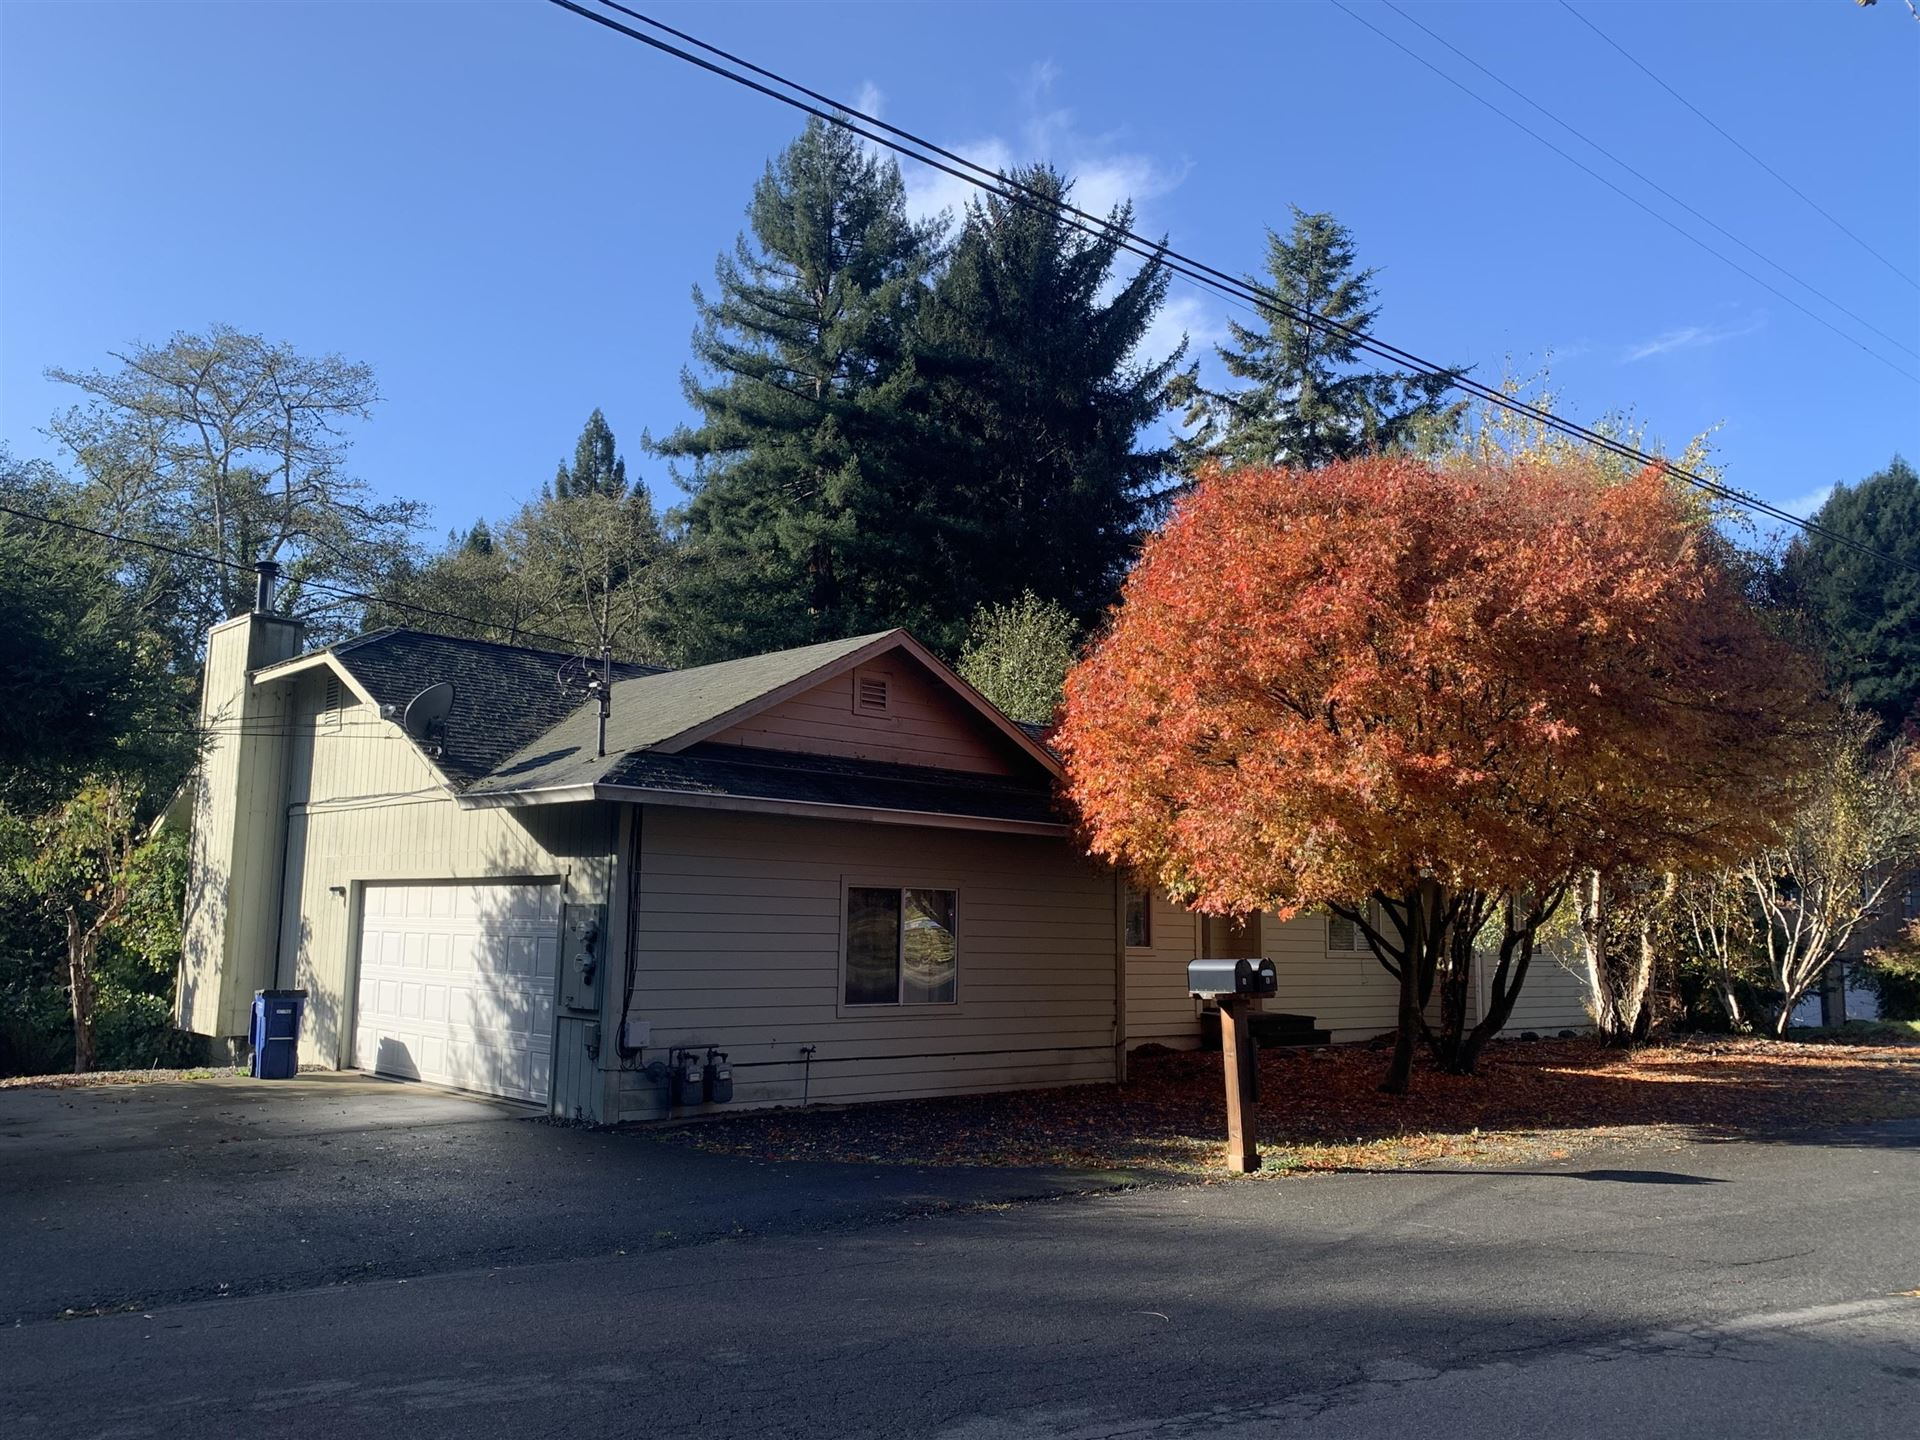 71 E California Avenue, Arcata, CA 95521 - MLS#: 257874